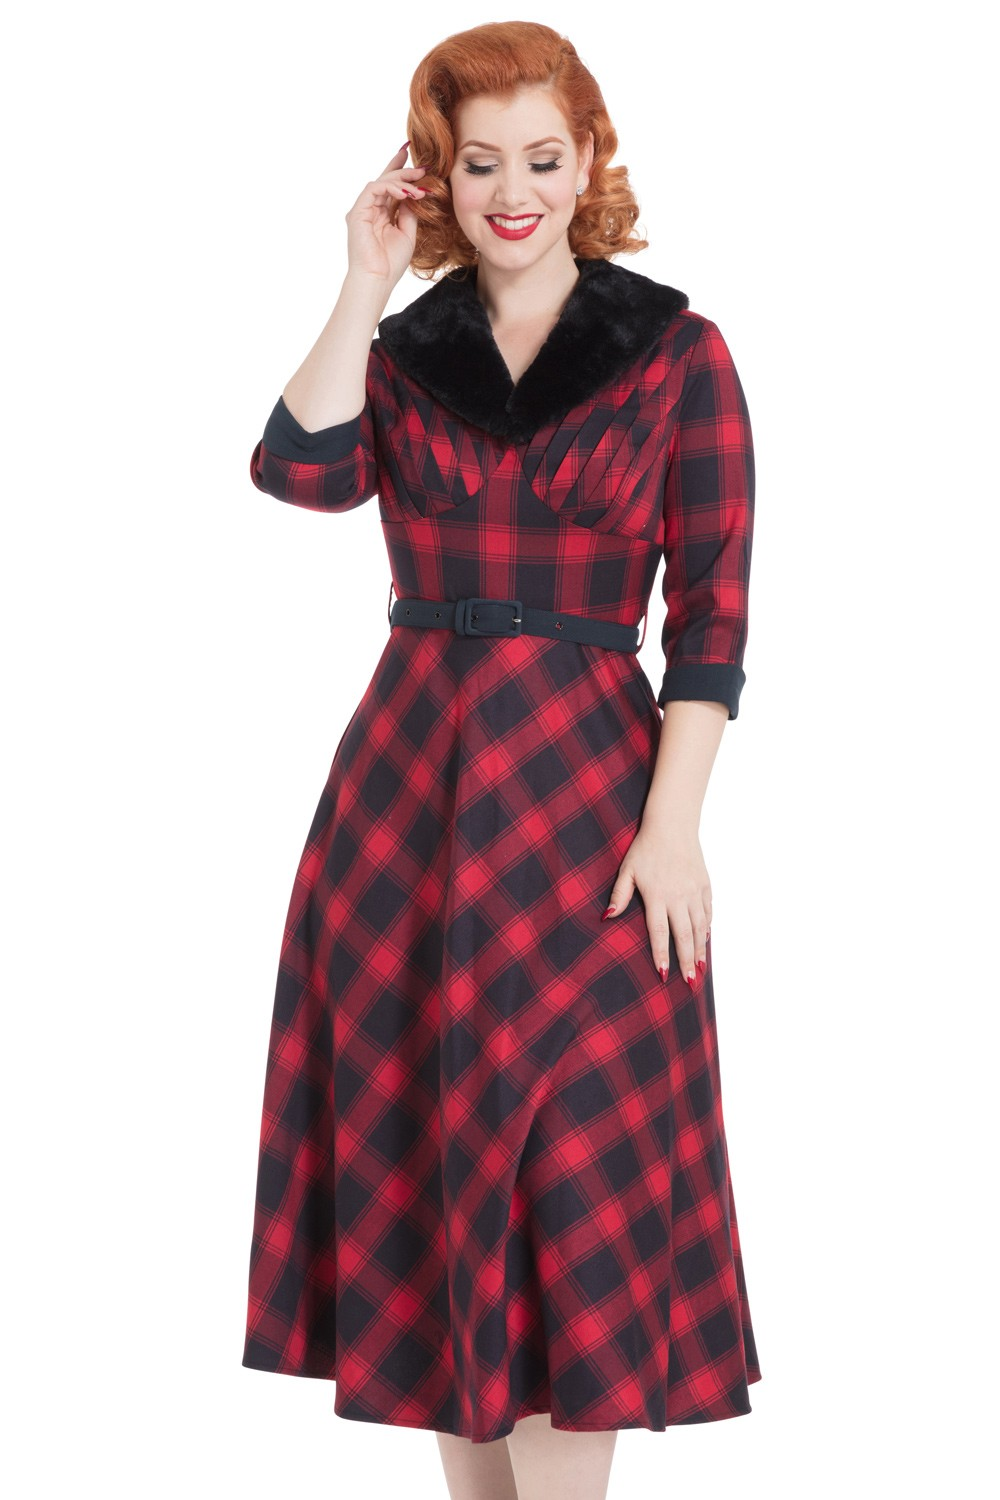 Vixen Bettie Tartan Red Dress